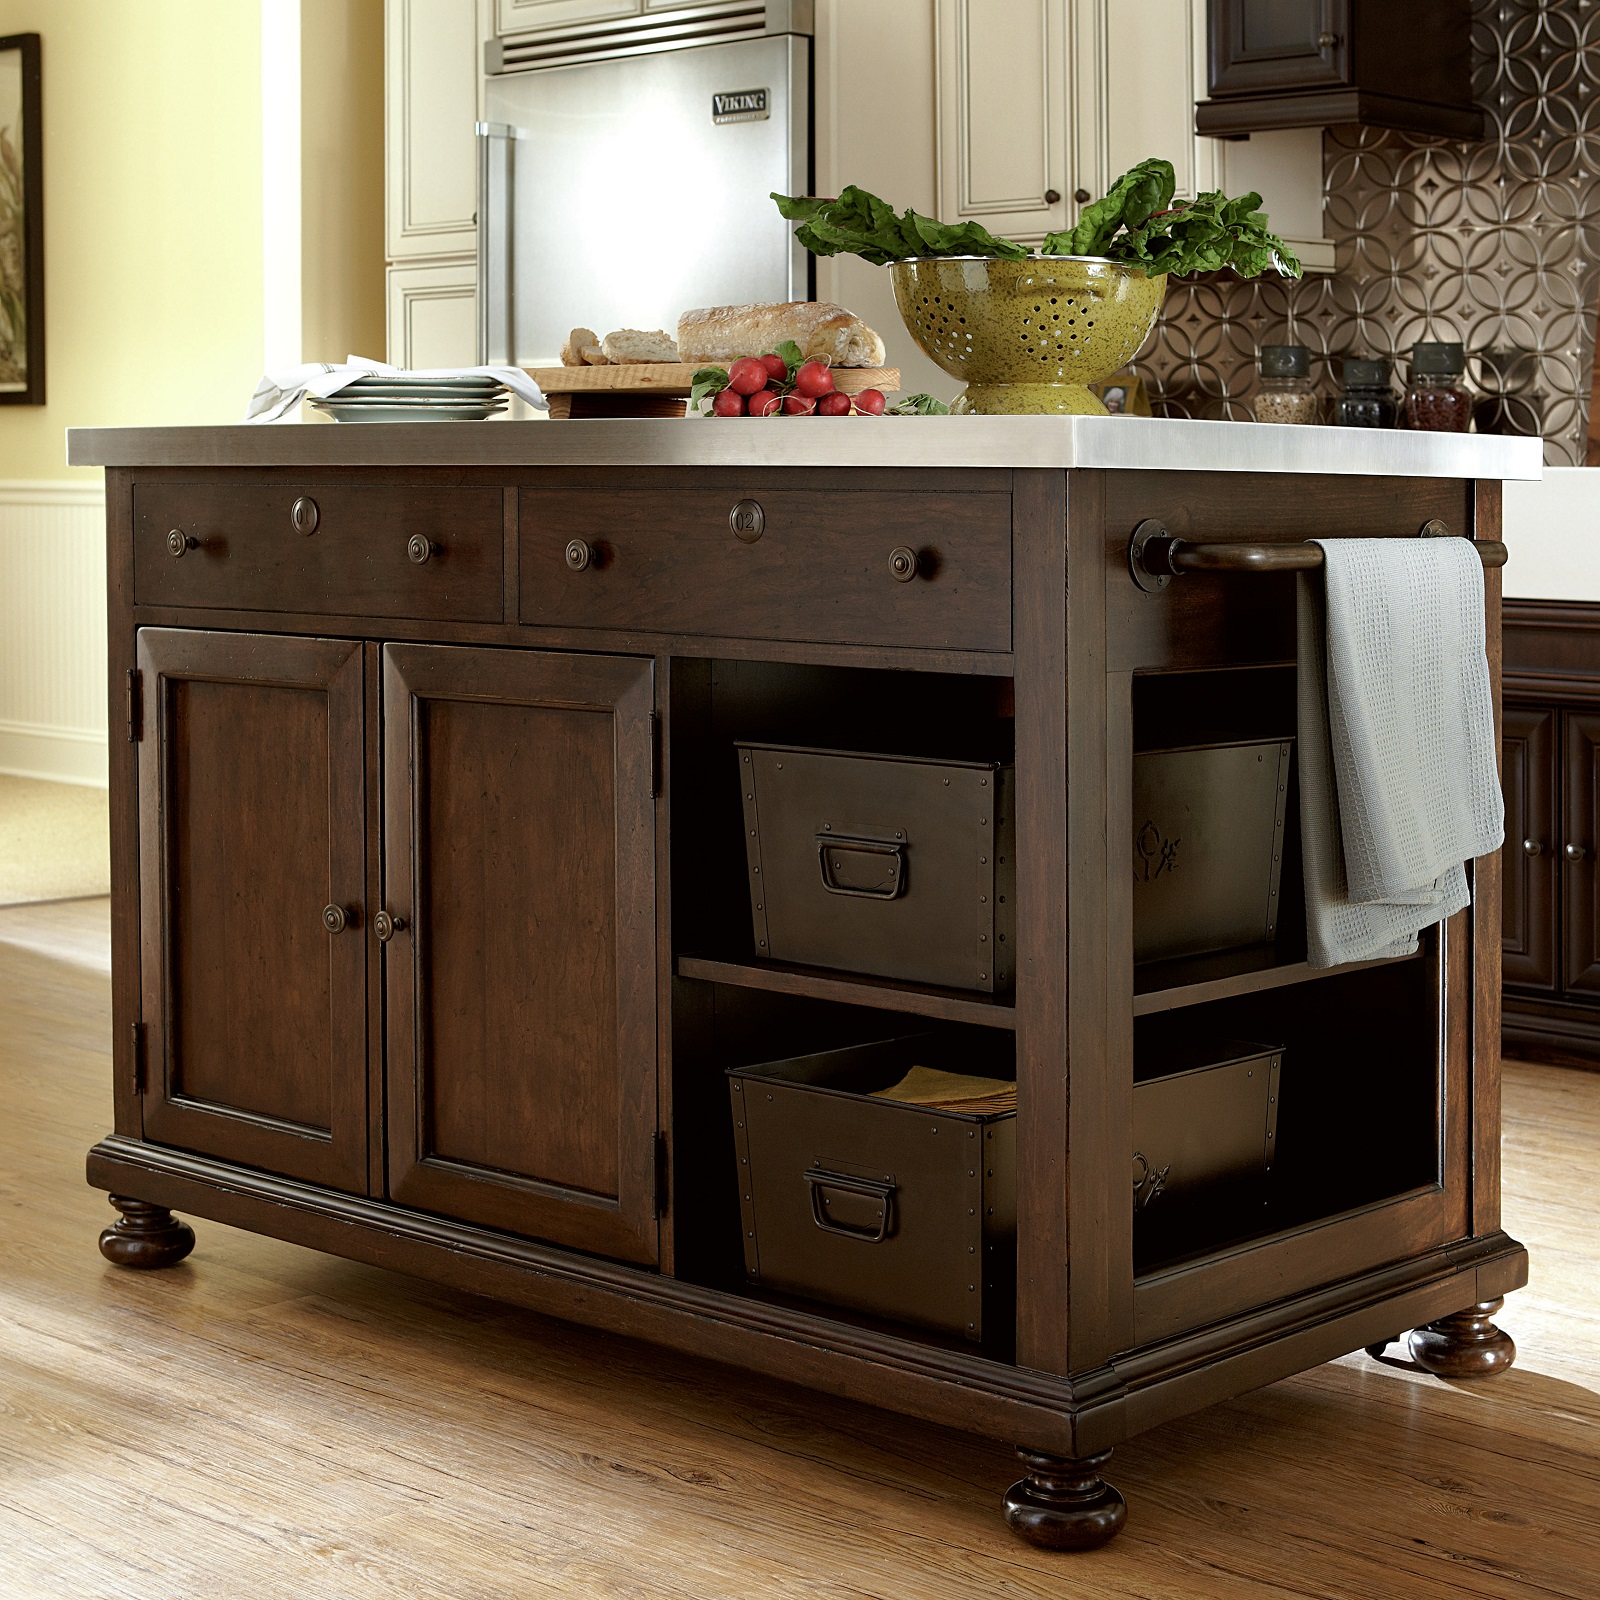 15 Amazing Movable Kitchen Island Designs And Ideas